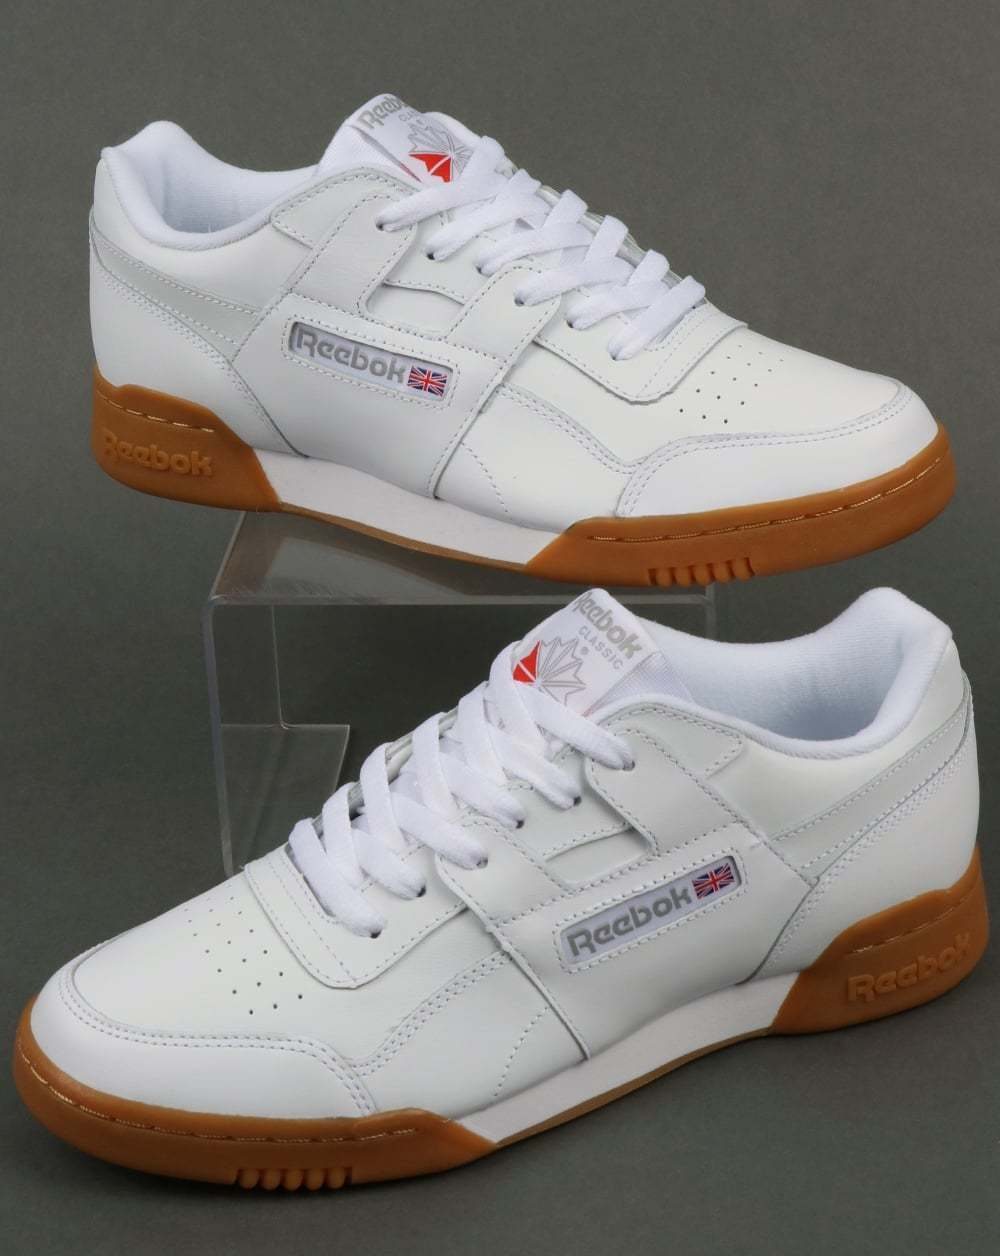 Reebok Workout Plus Trainers in Weiß, Gum Sole - classic H Strap soft leather